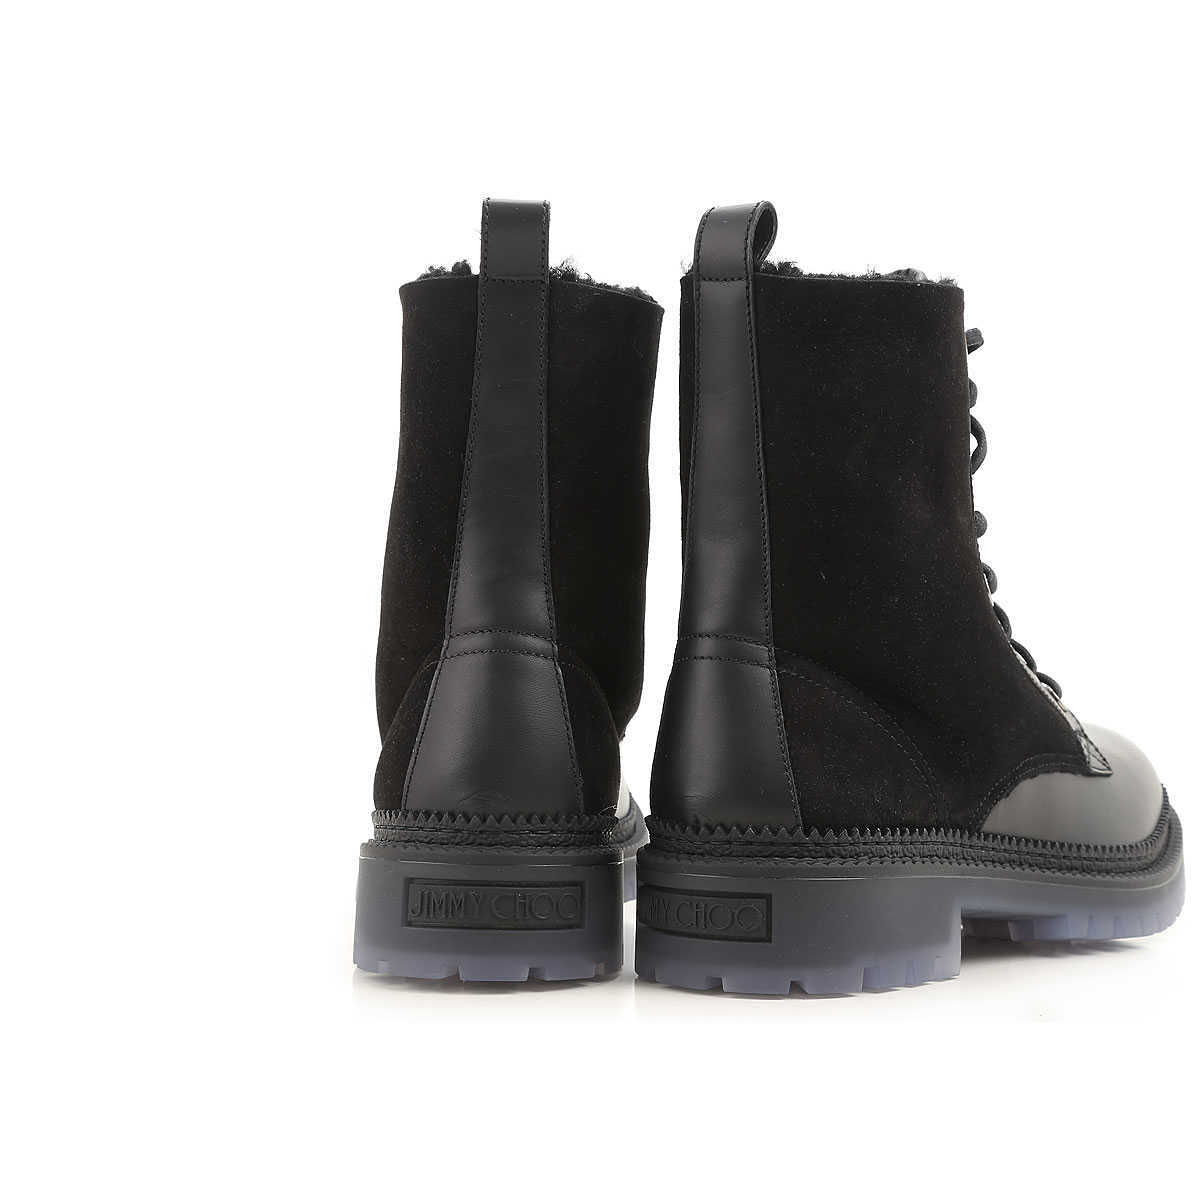 Jimmy Choo Boots for Men 7 8 Booties On Sale in Outlet UK - GOOFASH